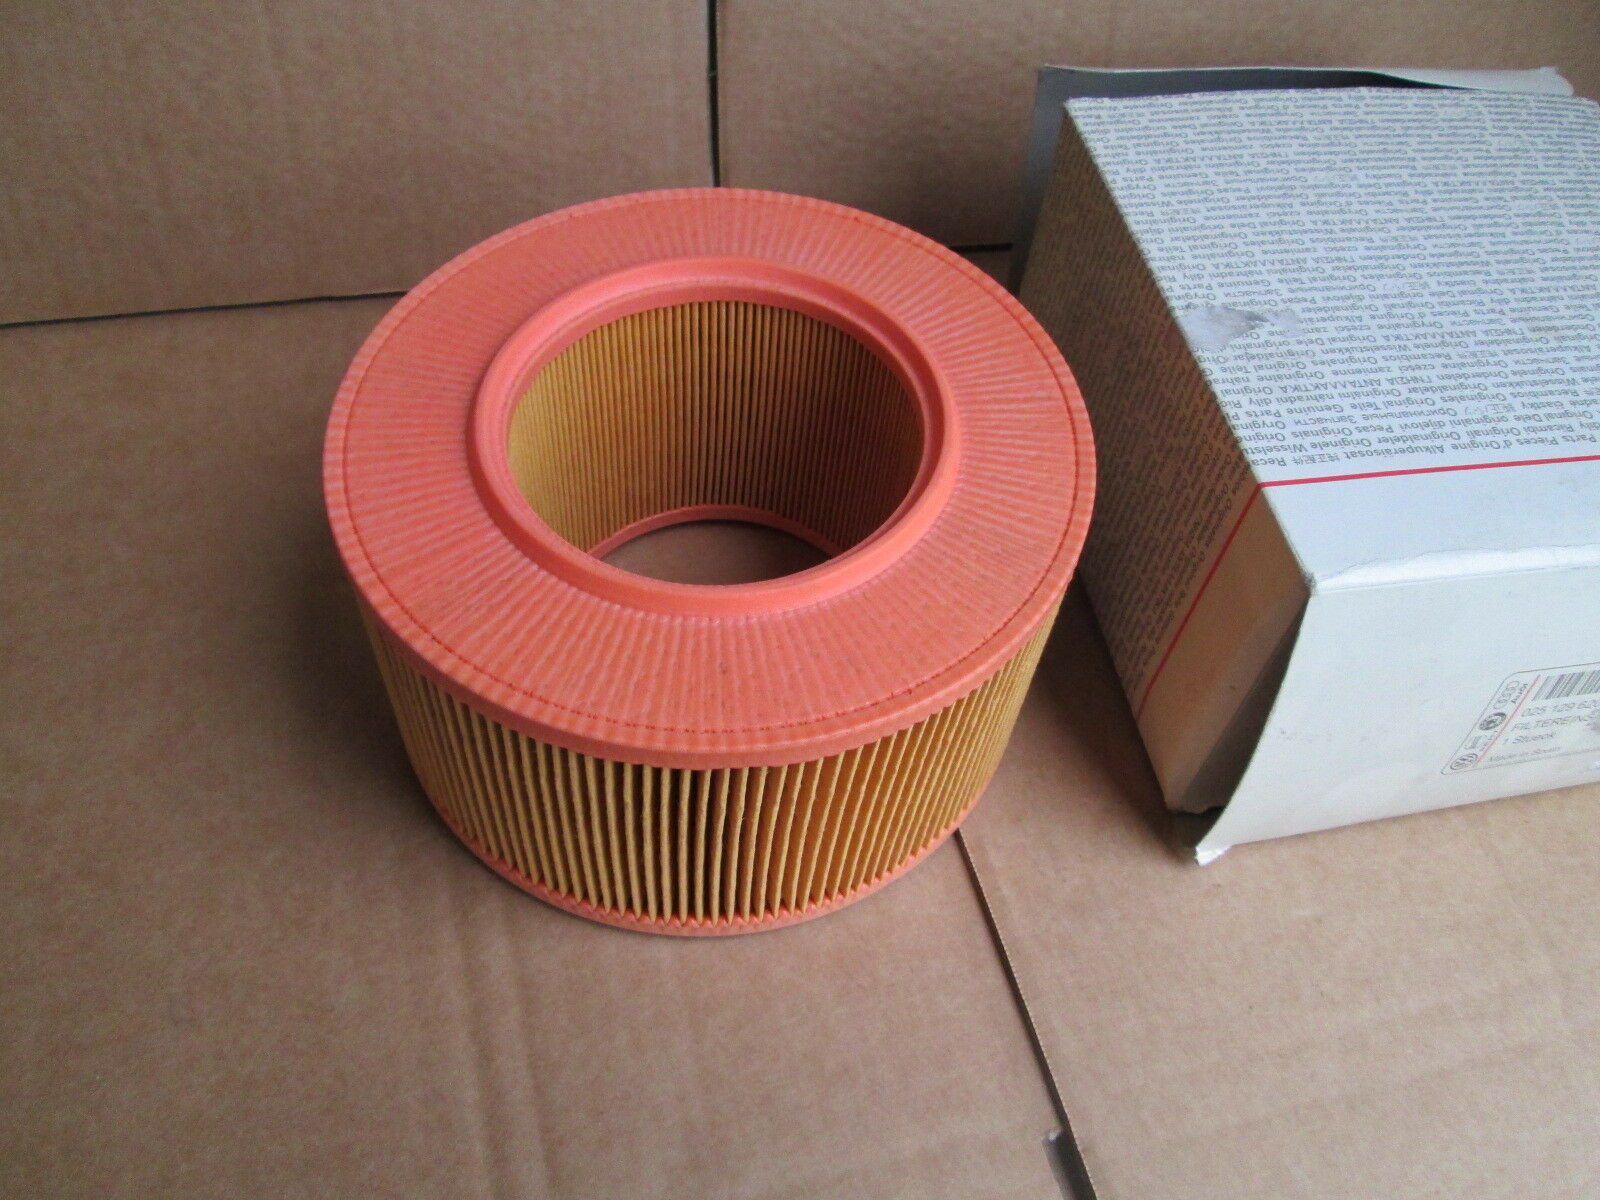 VW Transporter Caravelle 1990/>2003 1.9 2.0 2.2 2.4 2.5 2.8 Air Filter Car Van